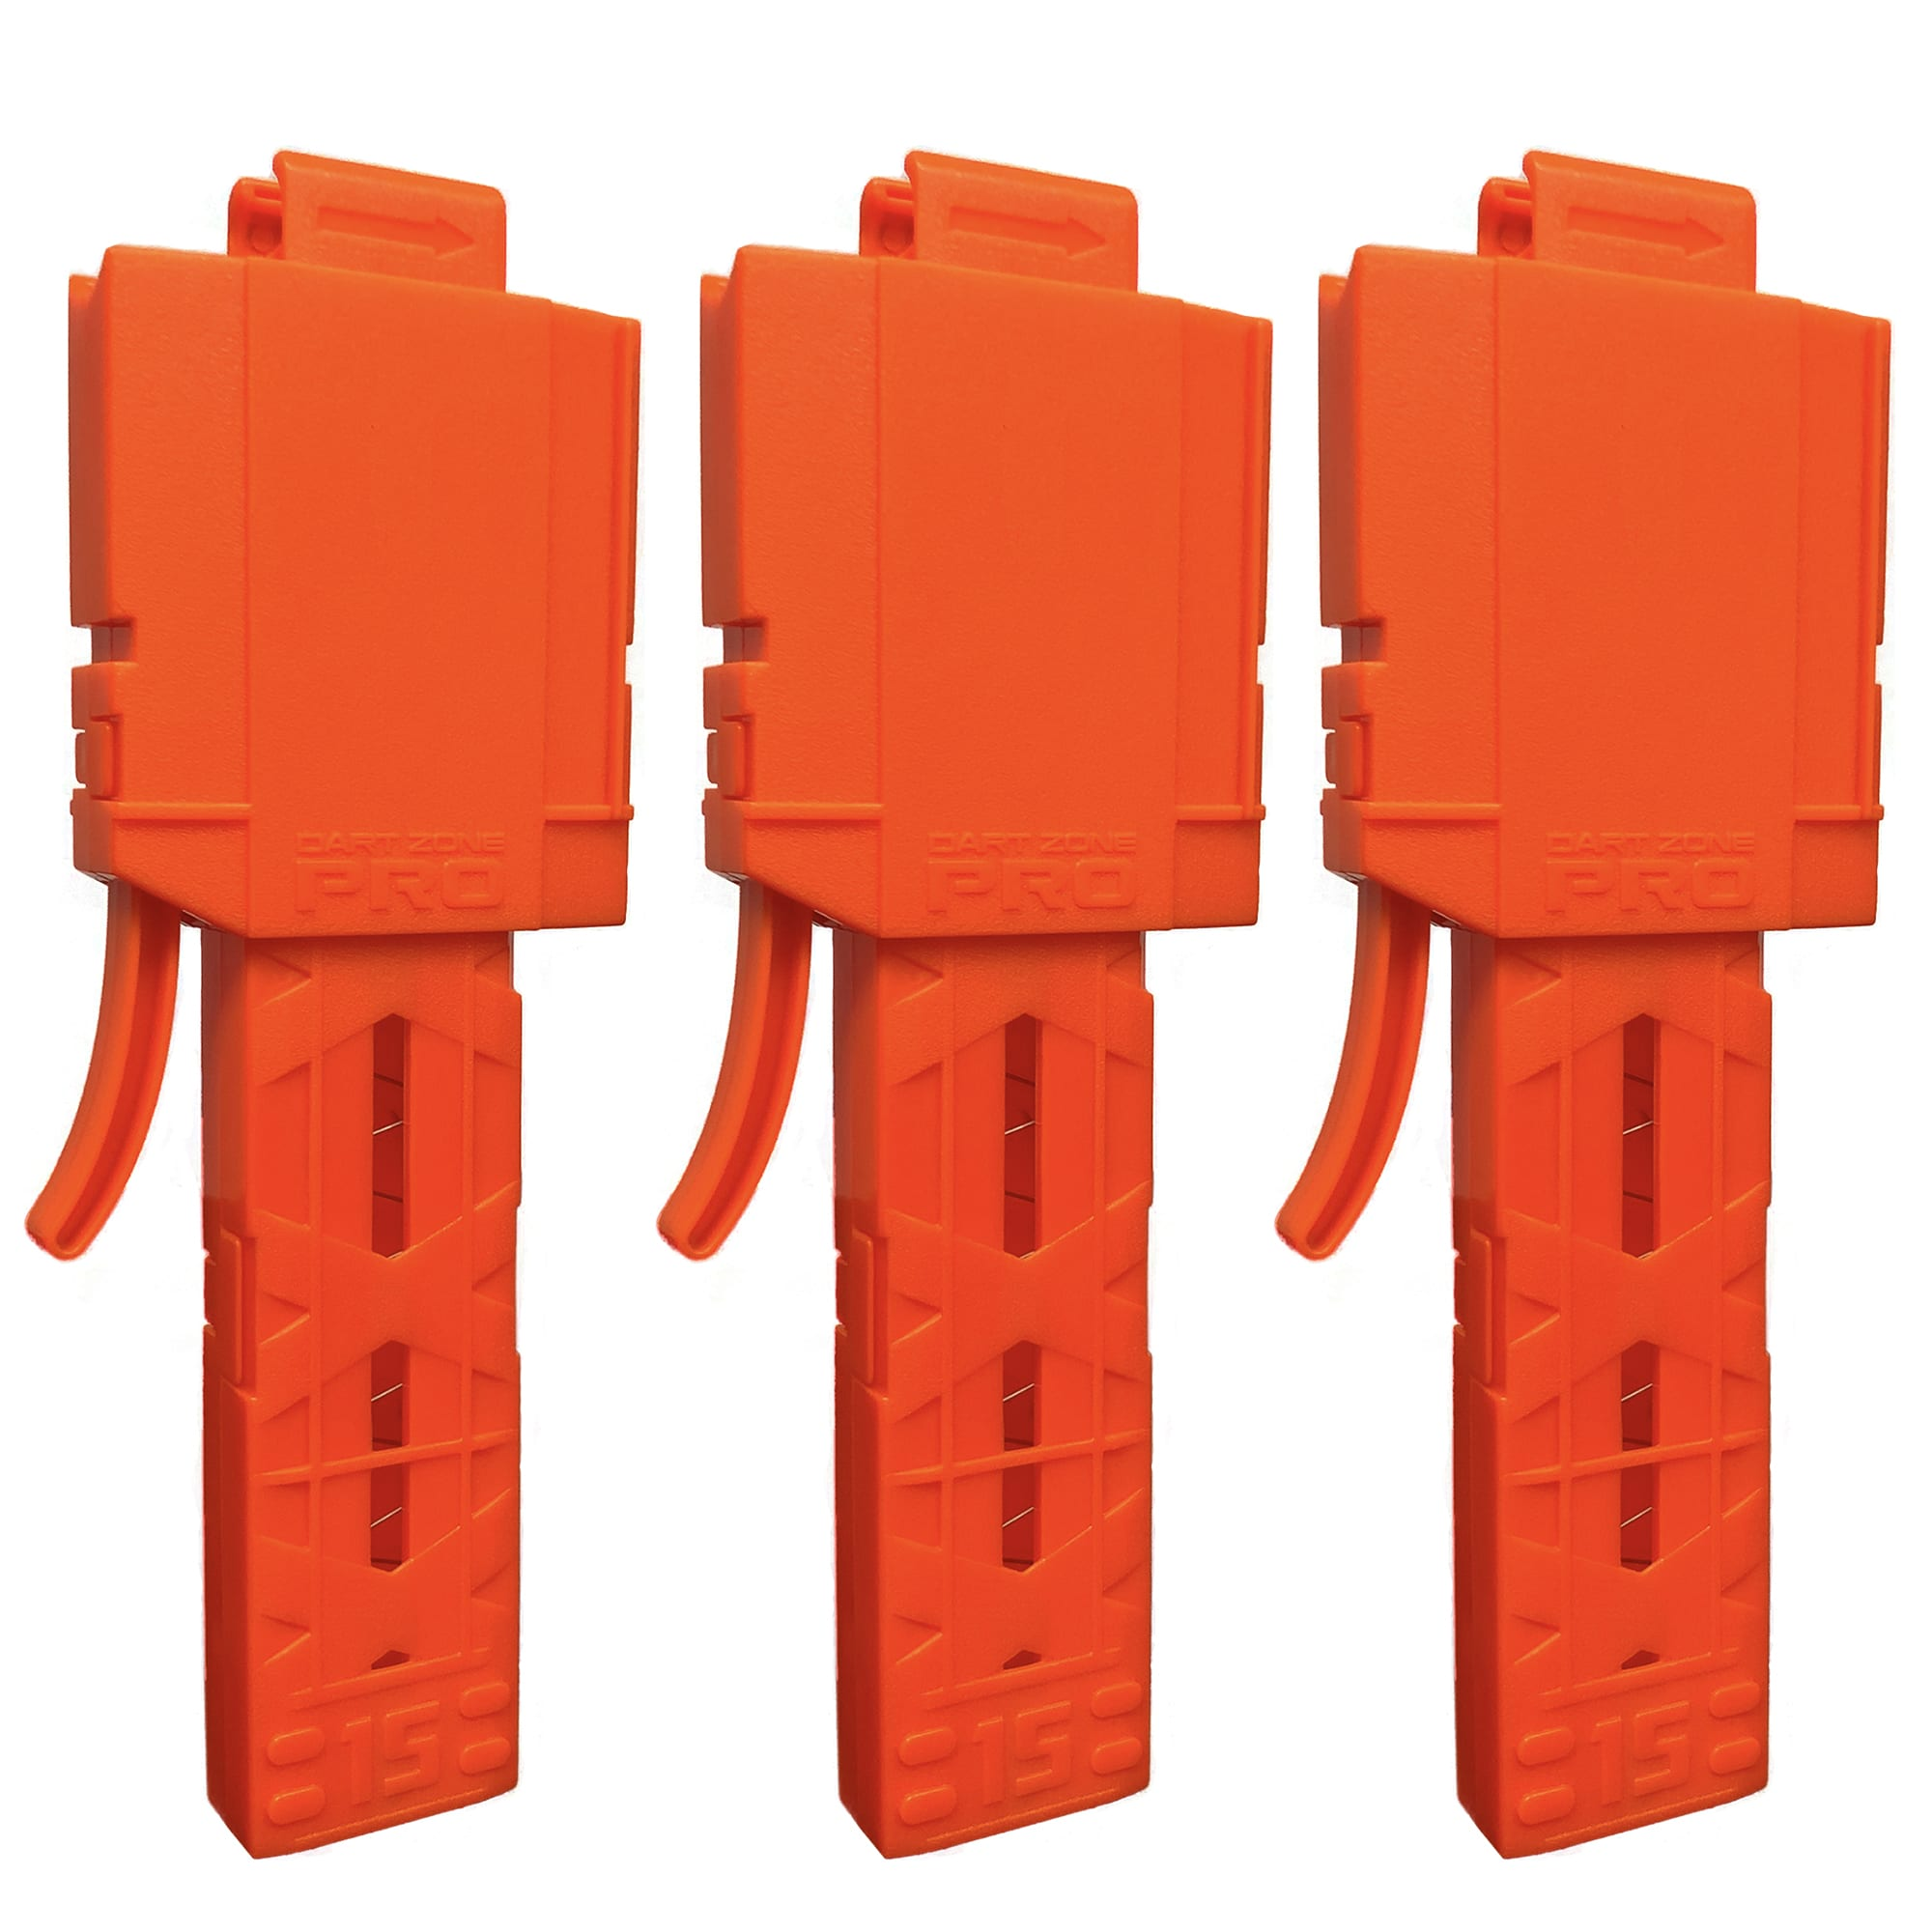 Pro Half-Length Magazines with Adaptors for High Power Toy Foam Dart Blasters